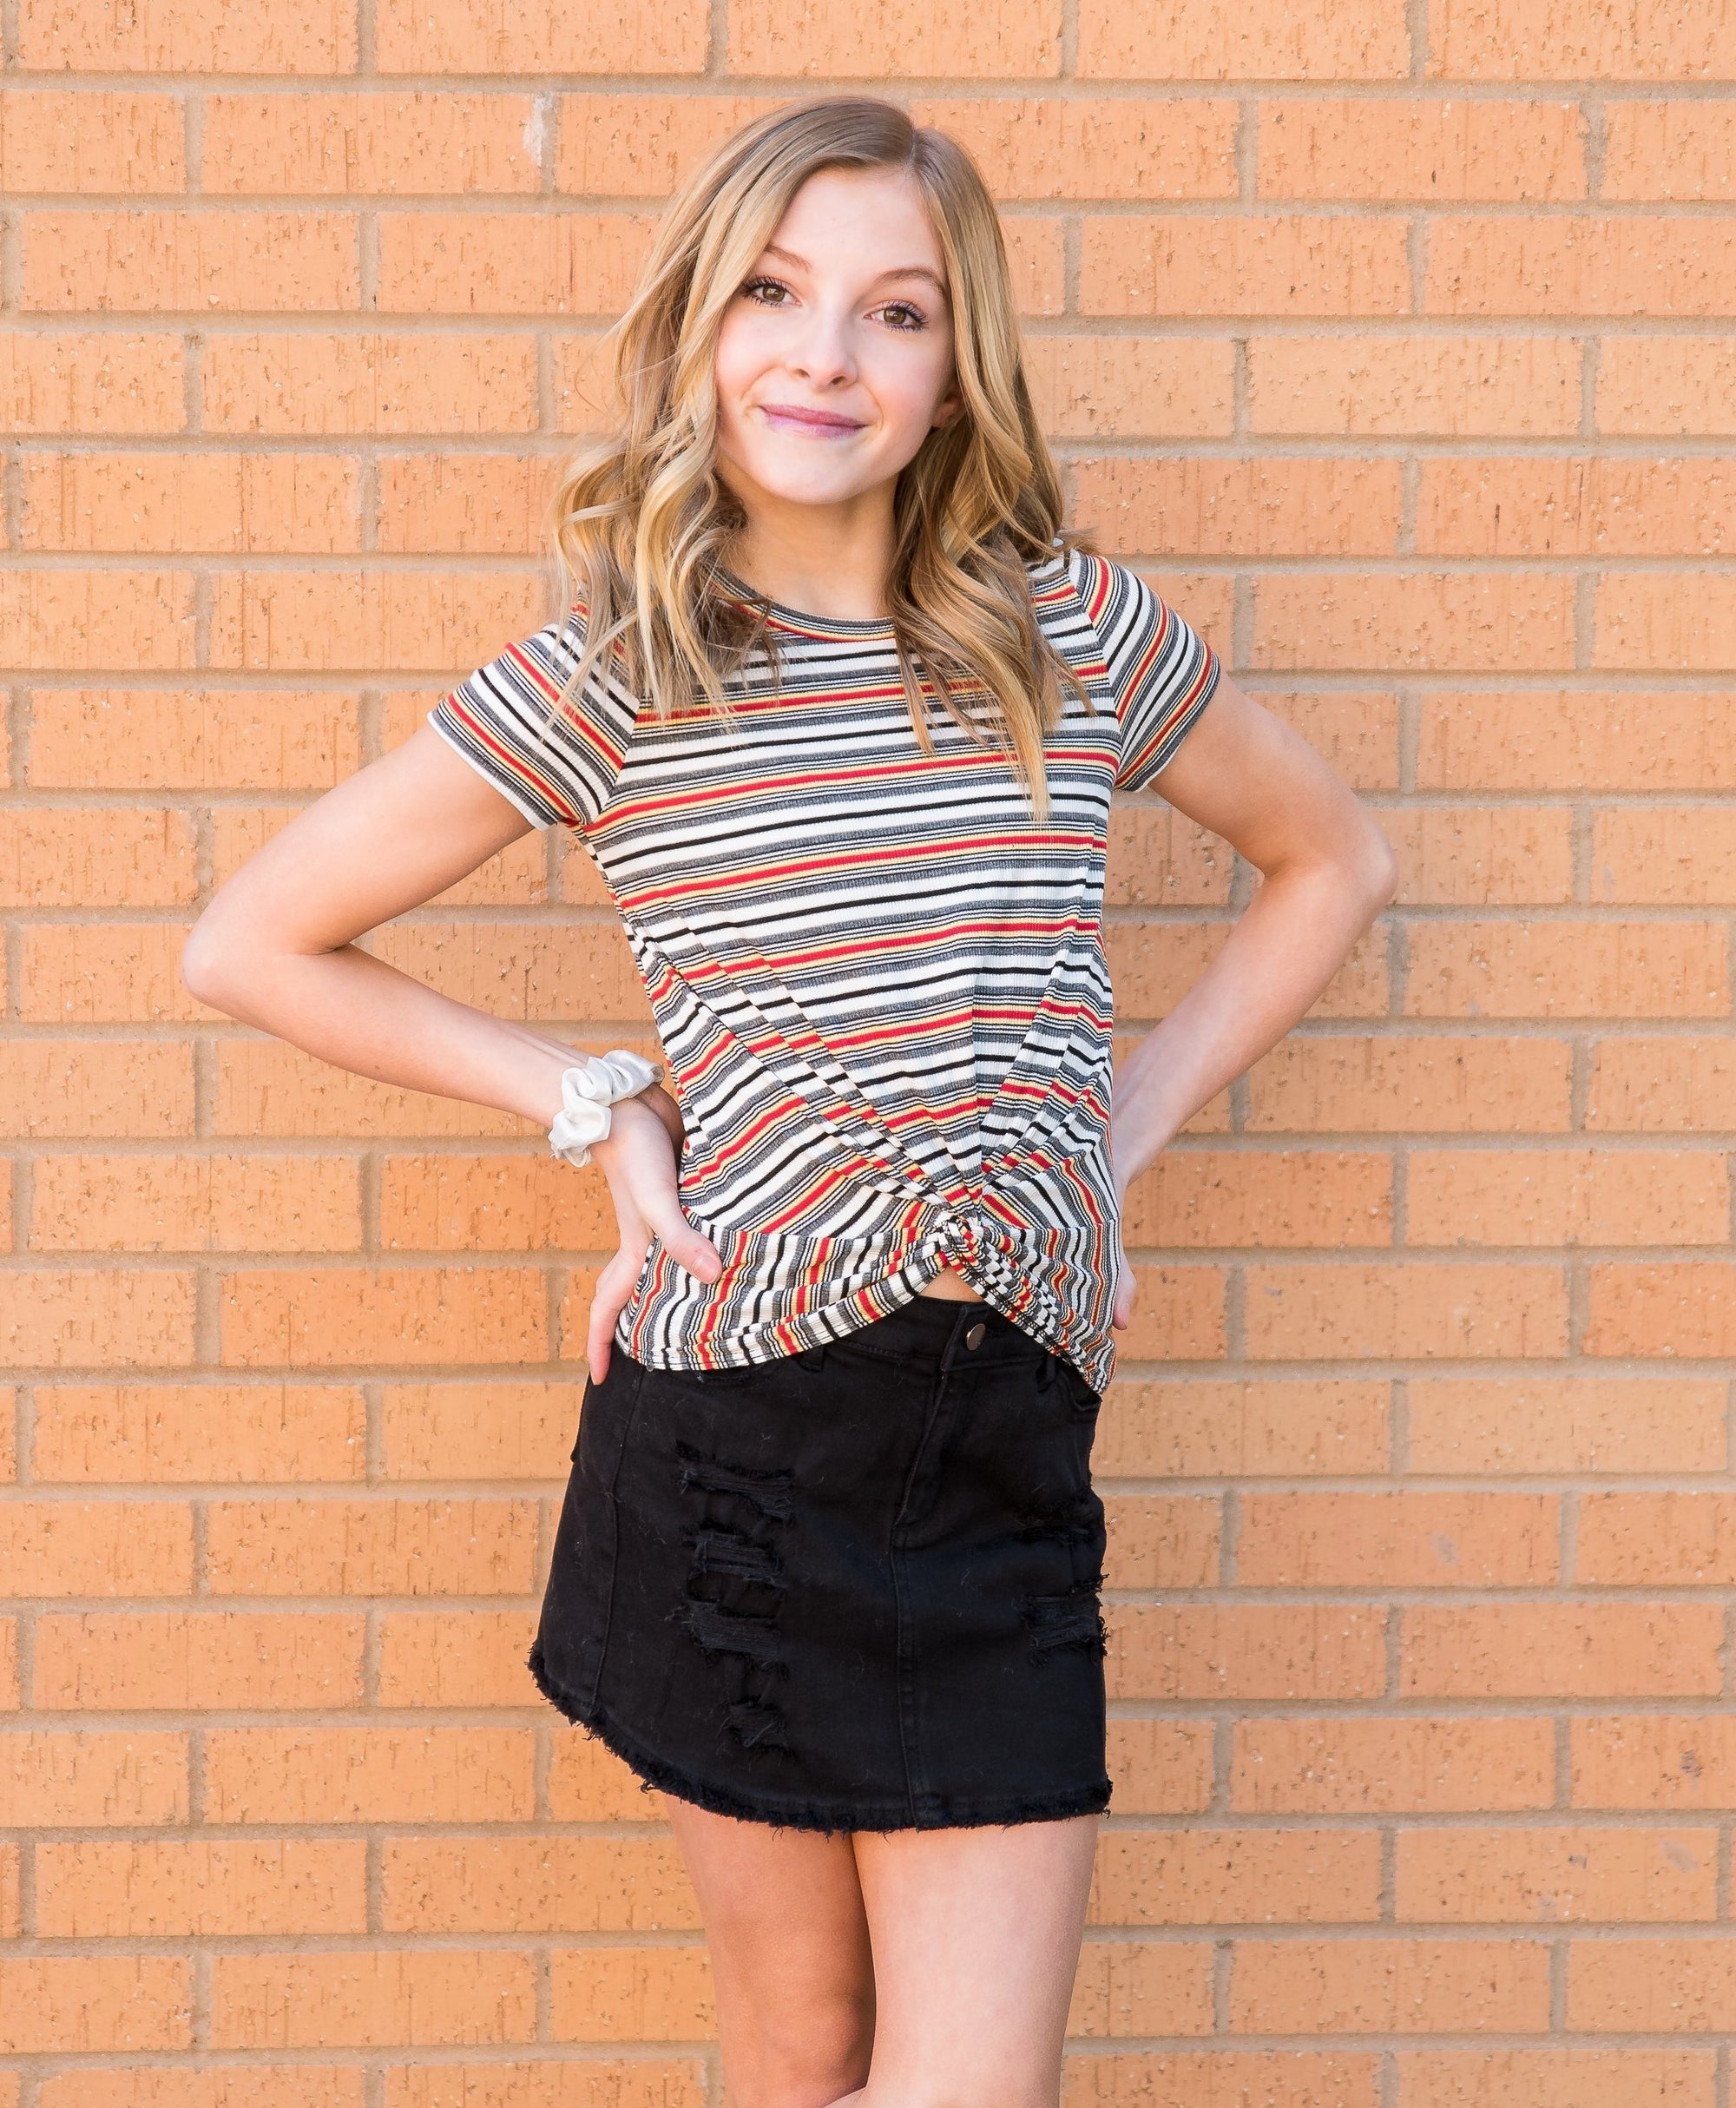 Tractr Distressed Black Mini Skirt for Girls Duckthreads